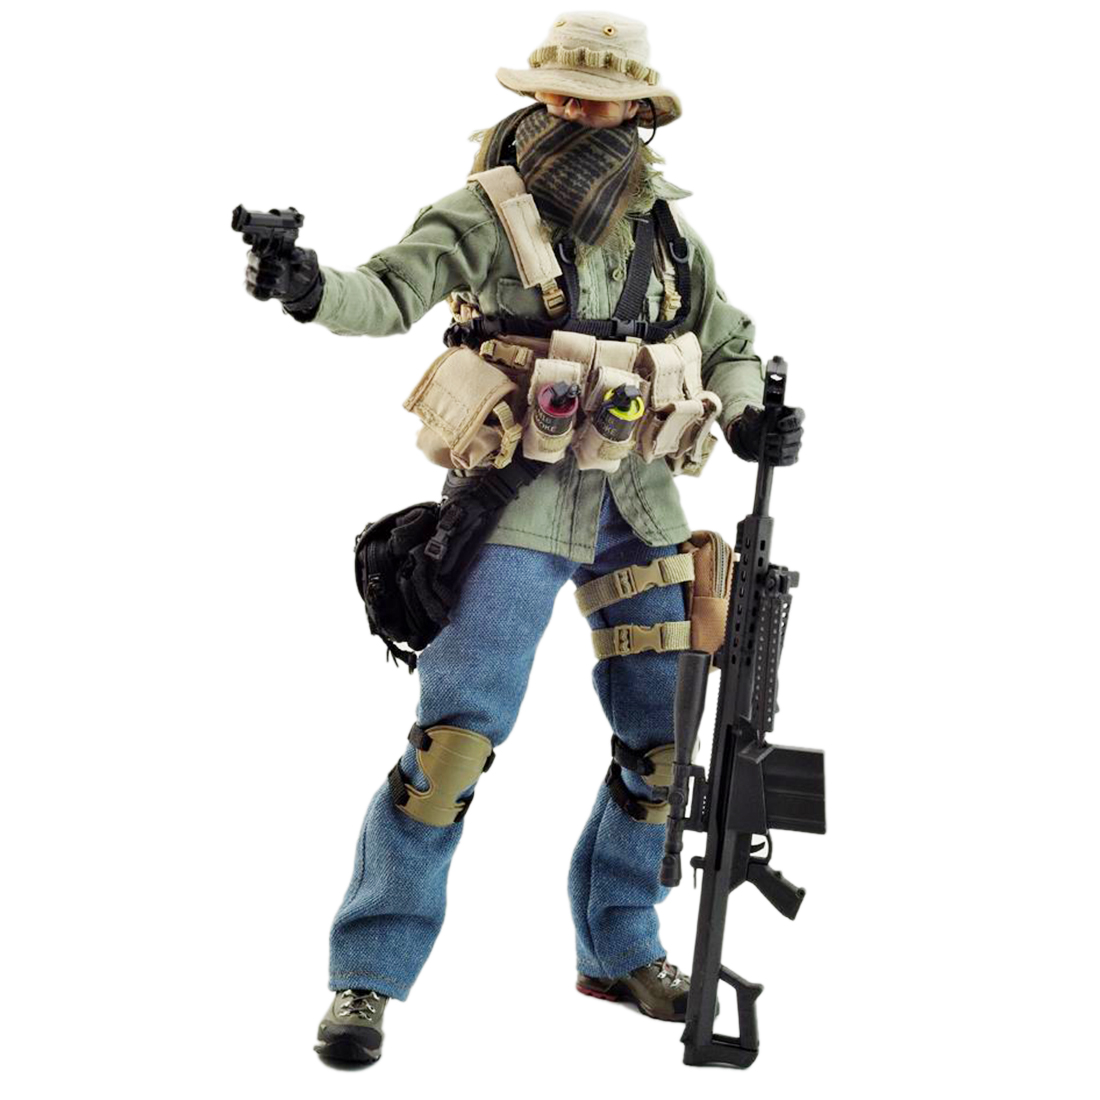 30cm VeryHot Soldier Model Suit PMC Sniper Uniform Equipment For 1/6 12 Inch Soldier Model (Body And Head Not Included )30cm VeryHot Soldier Model Suit PMC Sniper Uniform Equipment For 1/6 12 Inch Soldier Model (Body And Head Not Included )